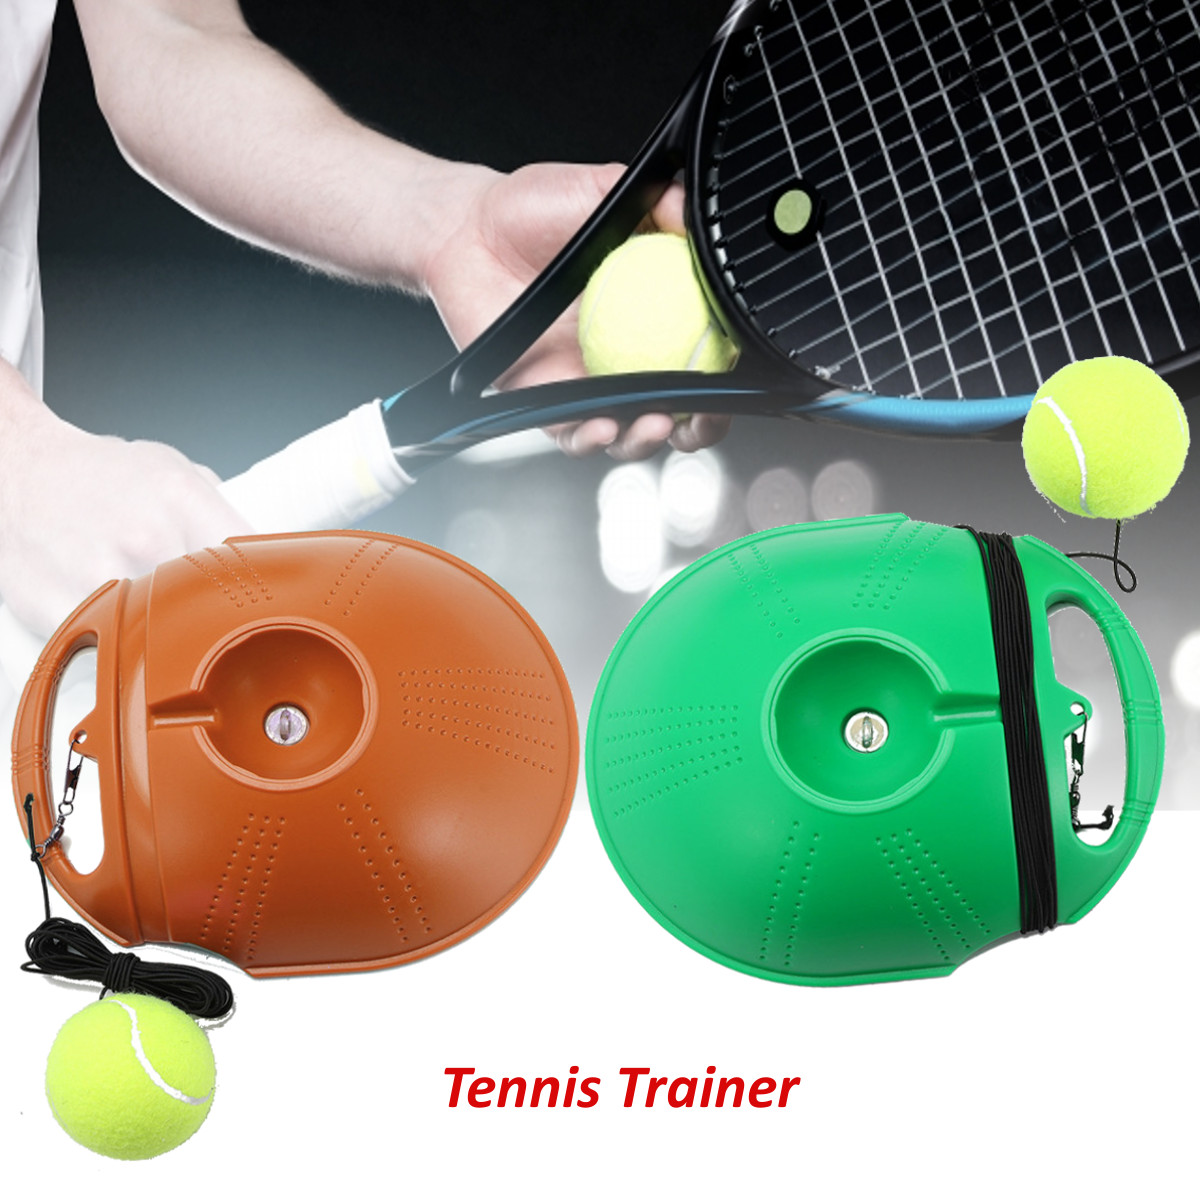 Tennis Trainer and Self-study Tennis Training Tool with Rebound Balls and Baseboard 7